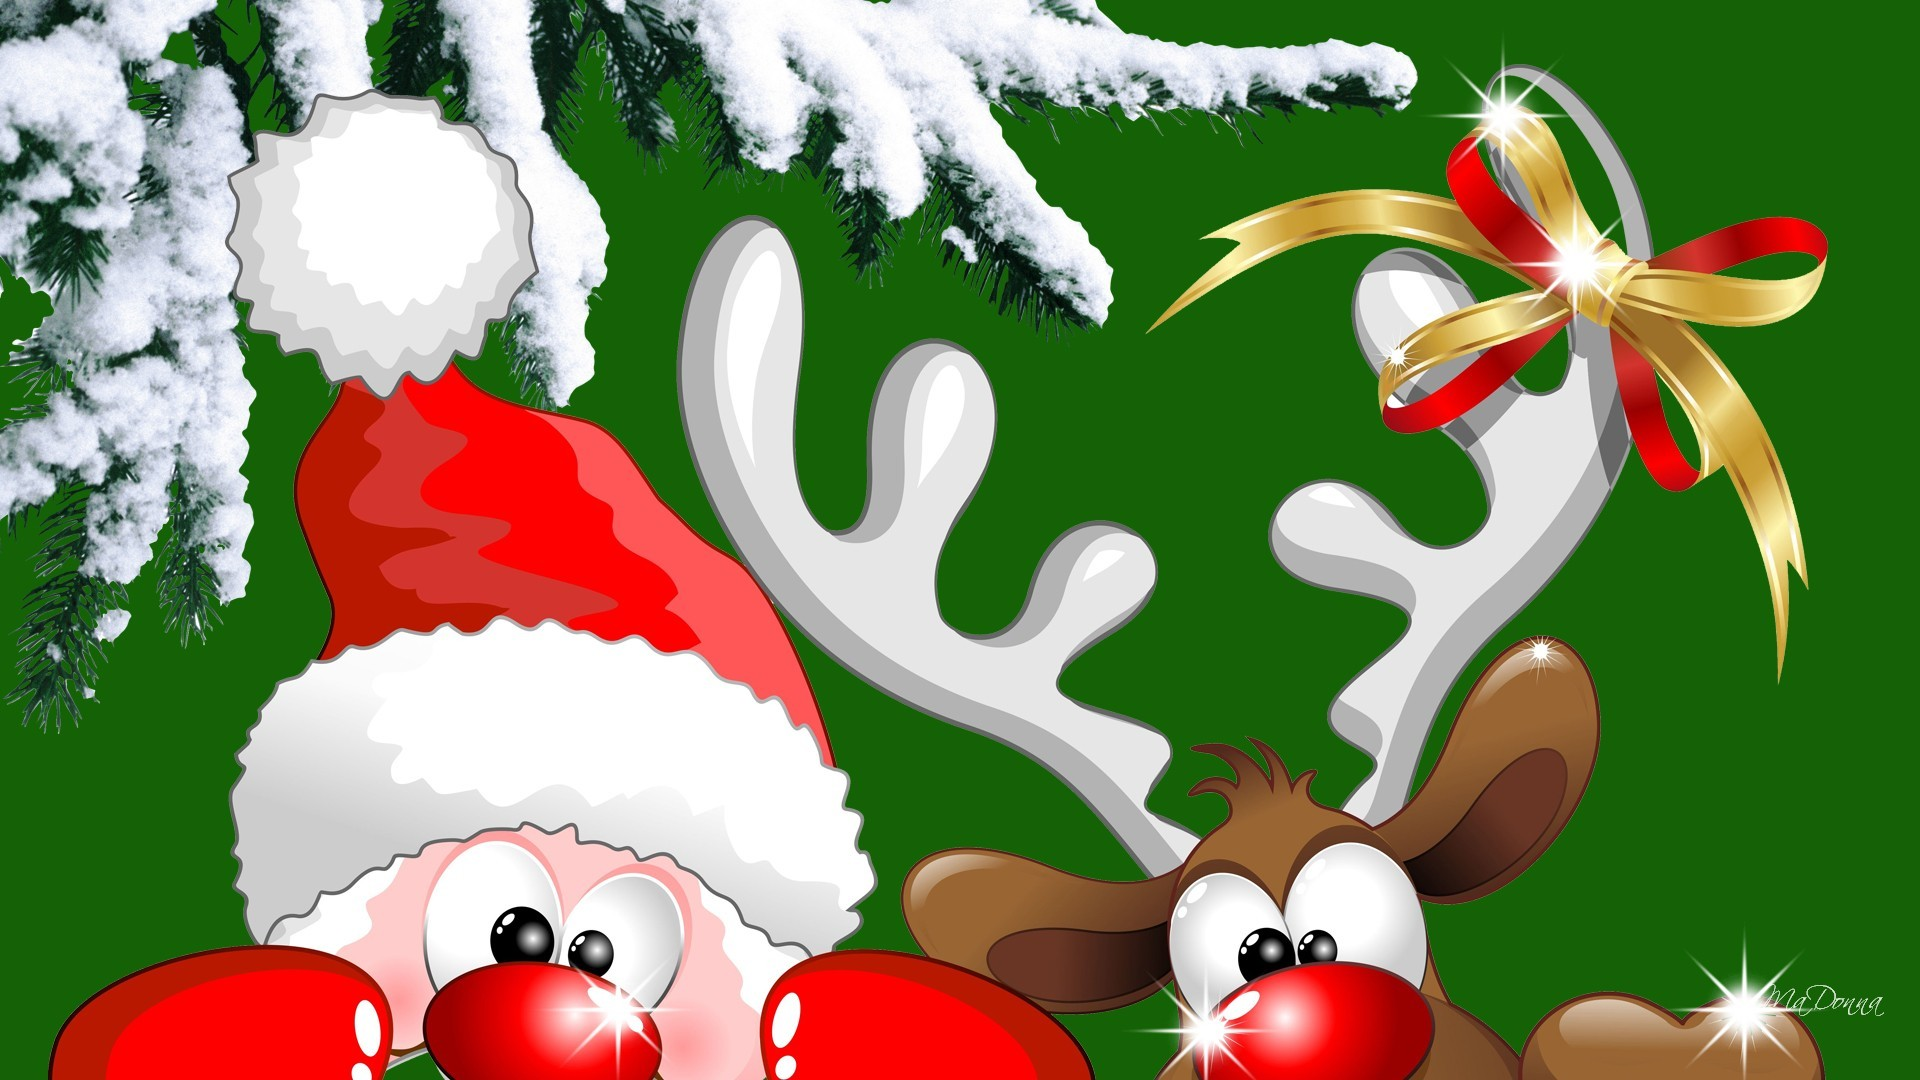 Res: 1920x1080, Rudolph Wallpapers Free Download by Csaba Muggach